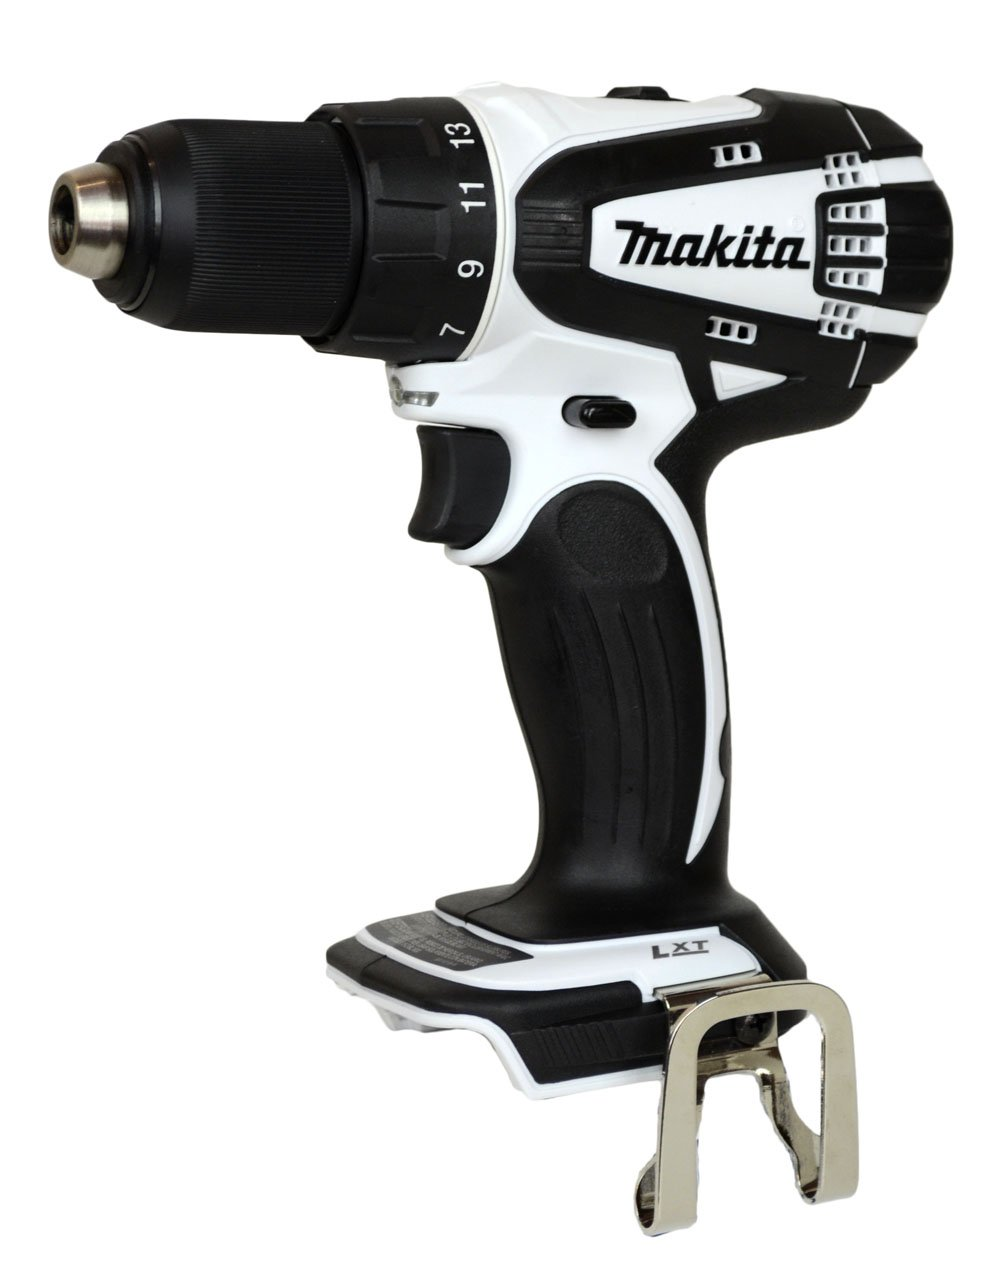 Makita 18V LXFD01 Lithium Ion White Drill Bare Tool Only, No battery or Charger Included